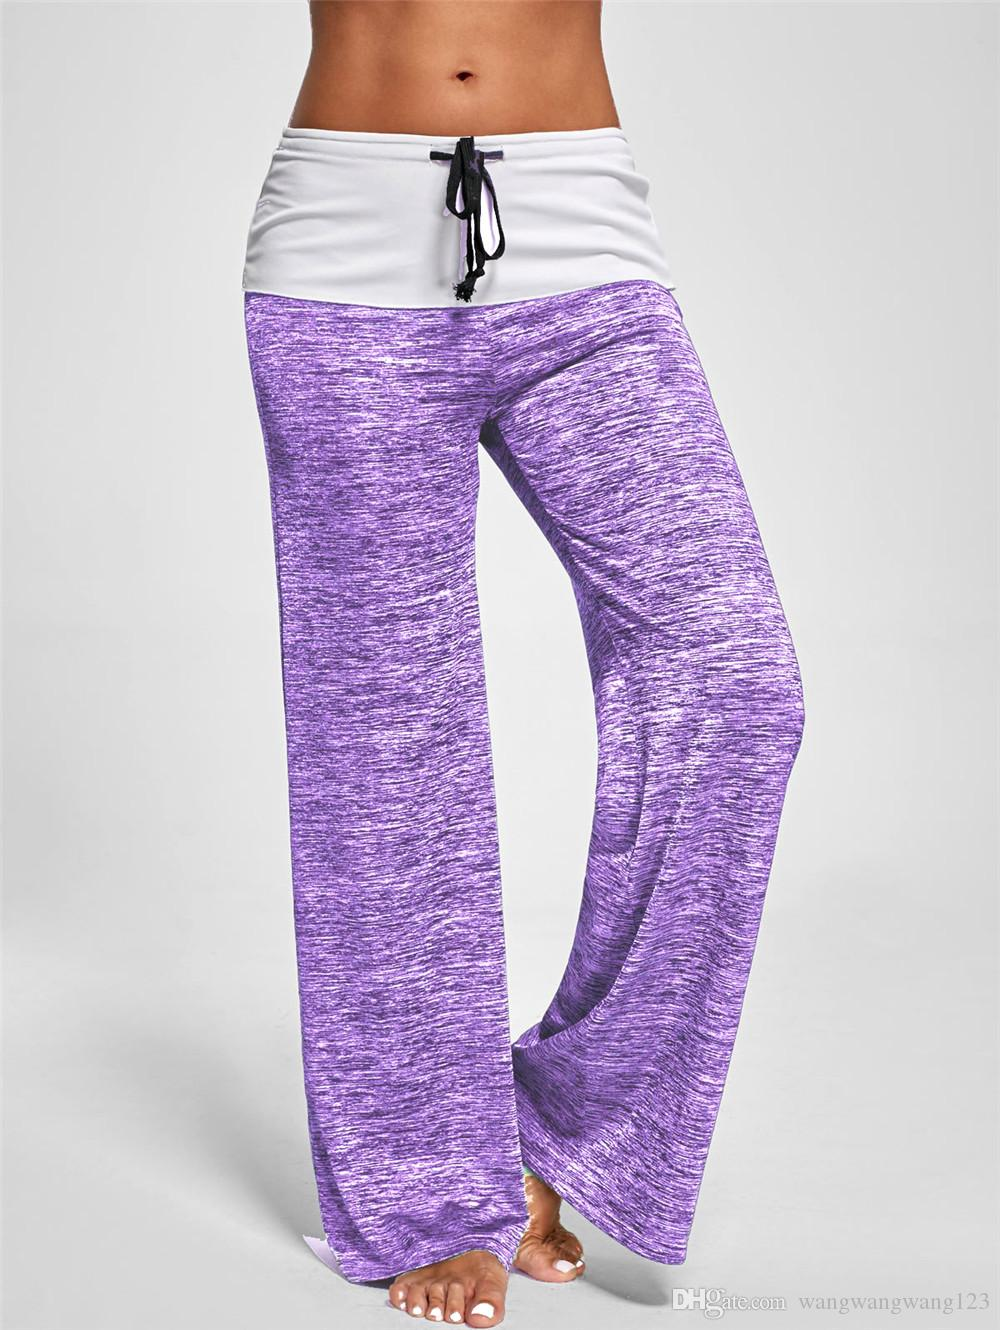 England casual pants spring autumn lady indoor High waist Drawstring Loose Relaxed Leggings Capris Cotton Blend Yoga training Sport trousers